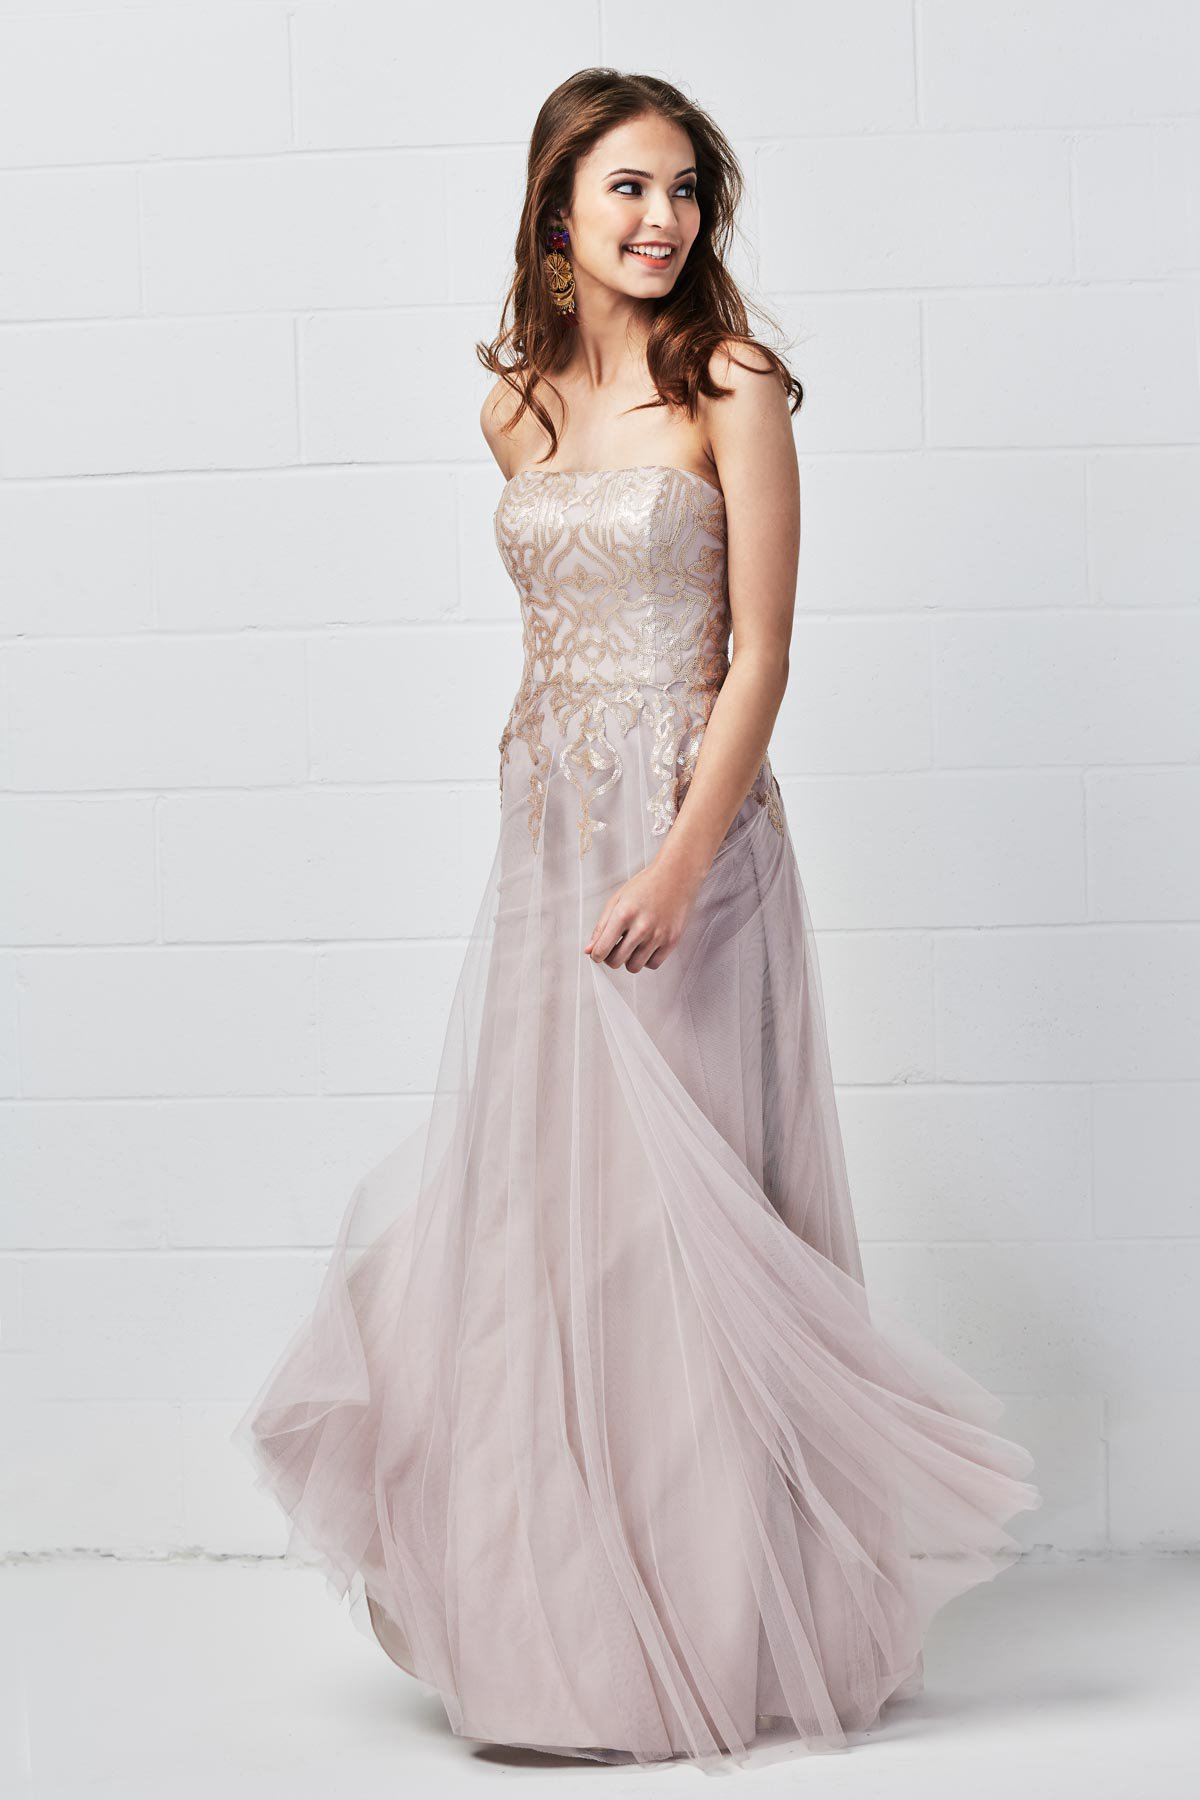 WToo Bridesmaids by Watters strapless Style 652 in latte talisa sequin and tulle at Gilded Social